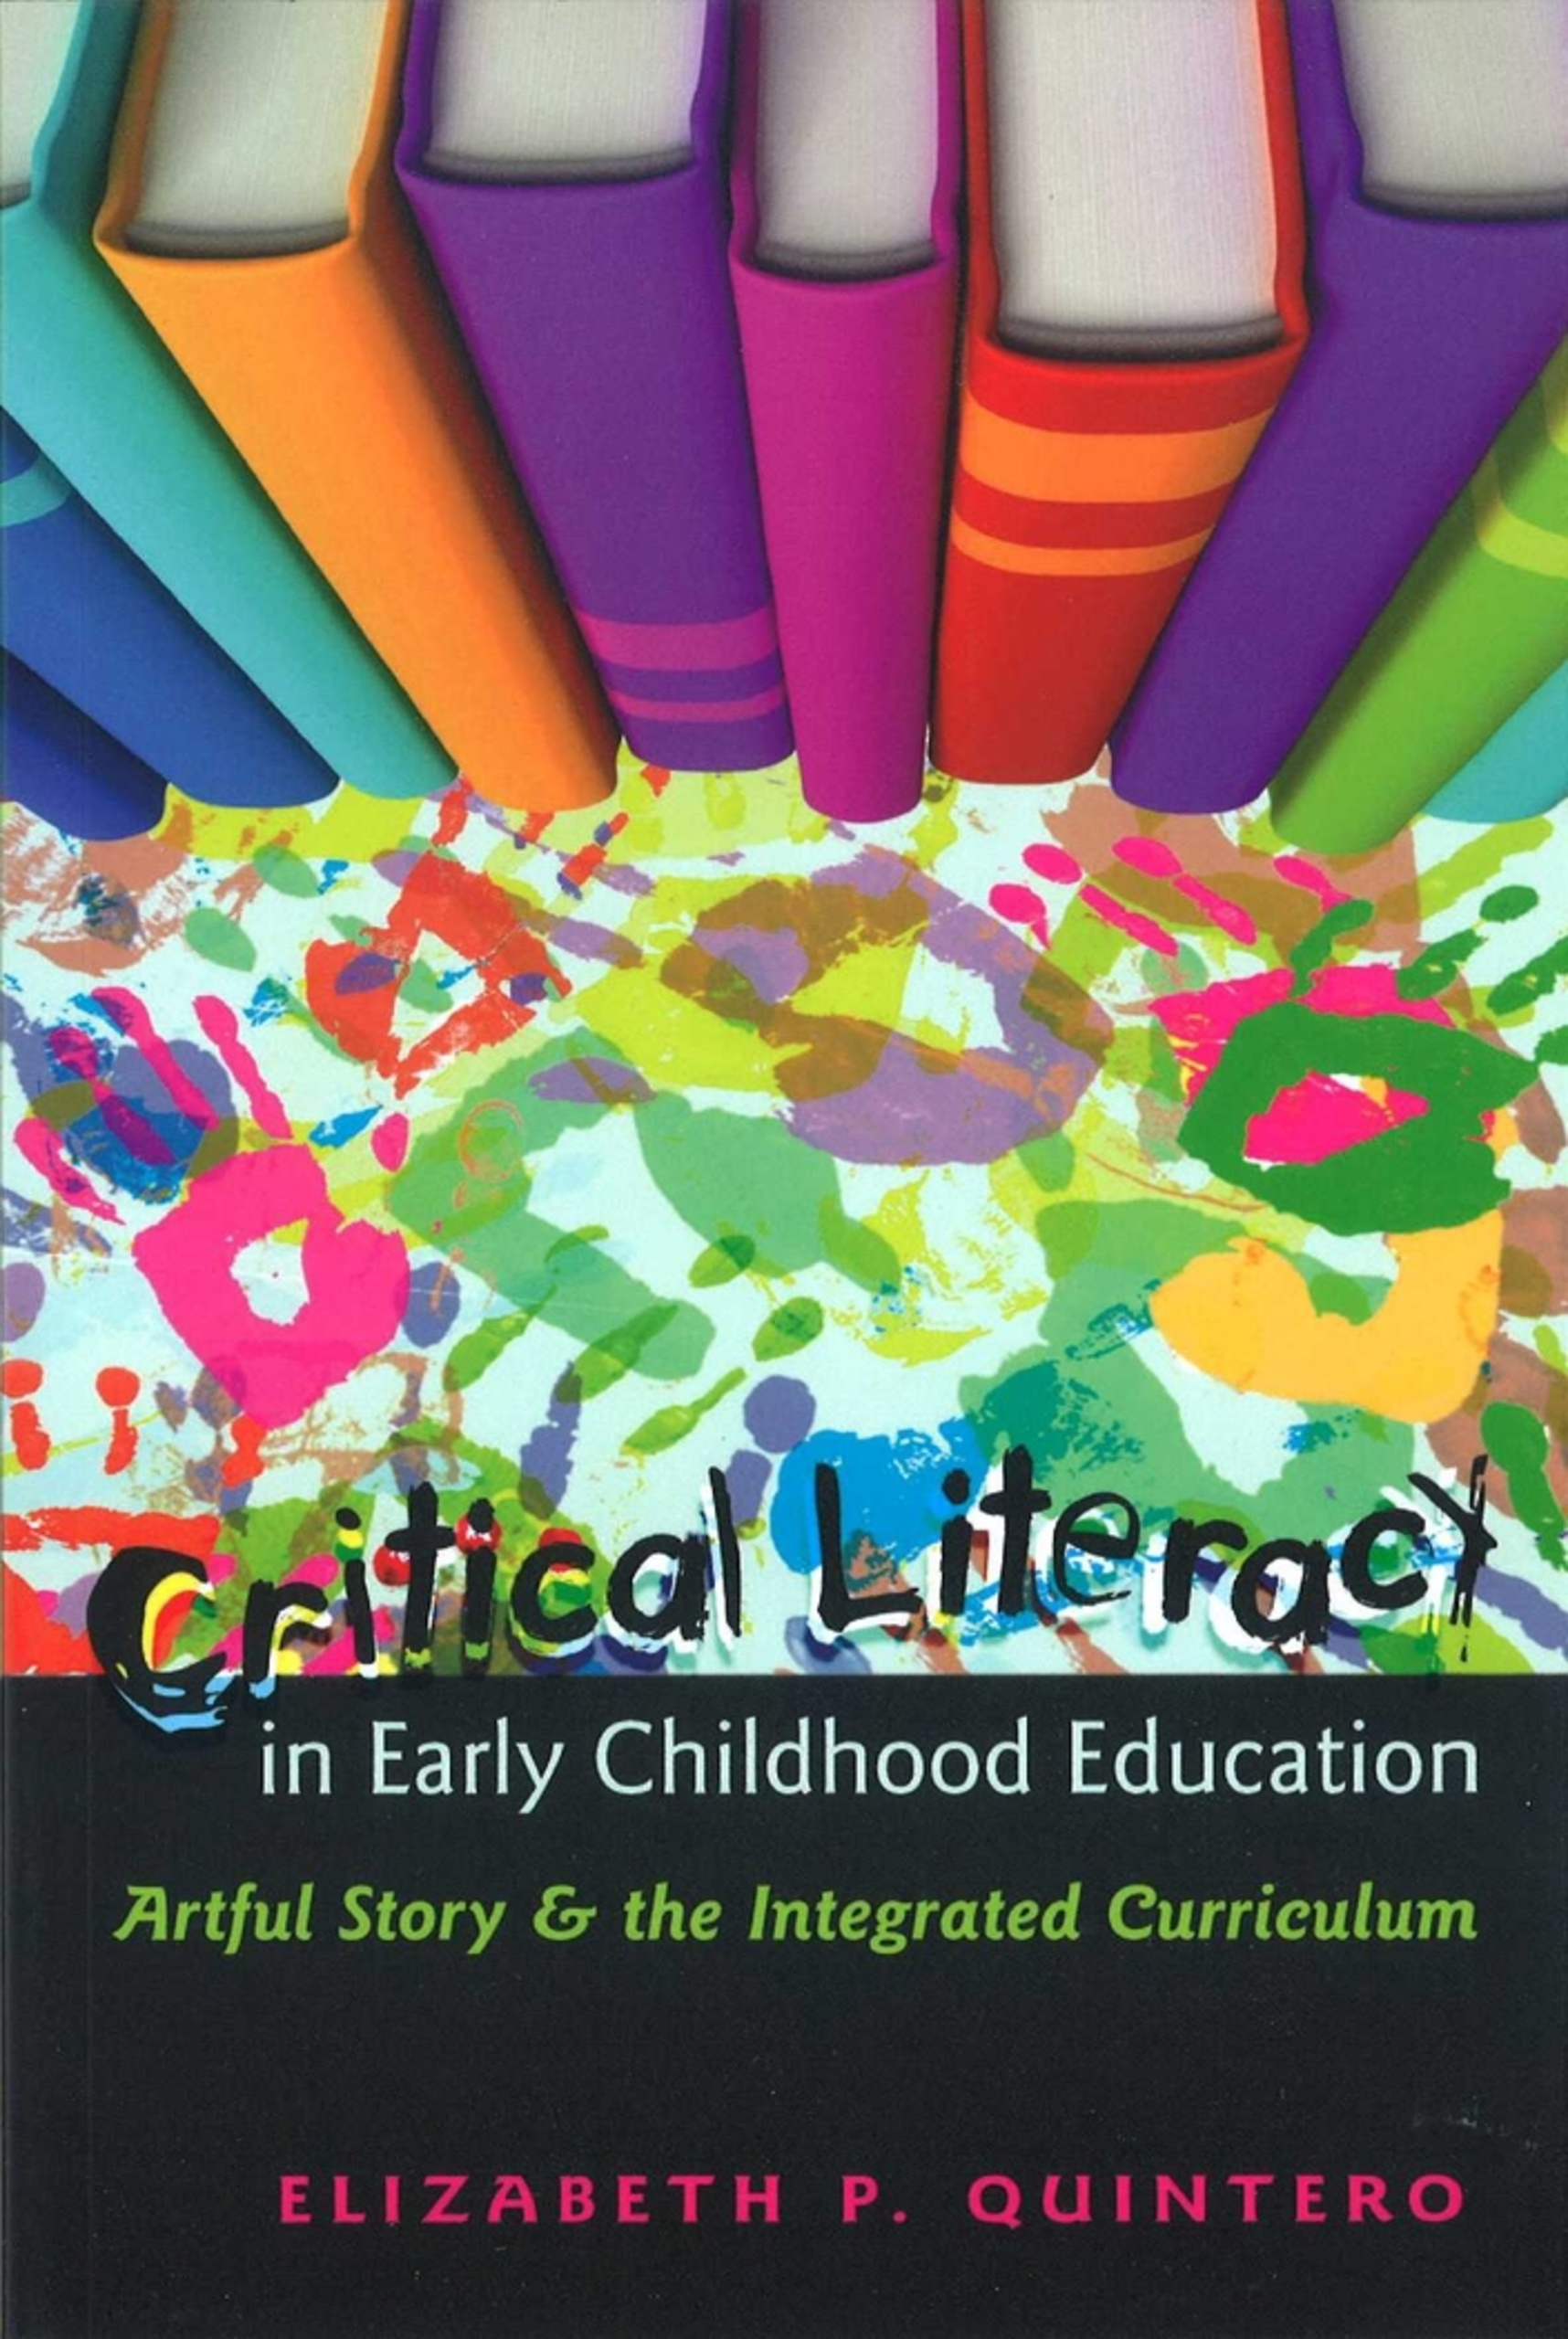 Title: Critical Literacy in Early Childhood Education